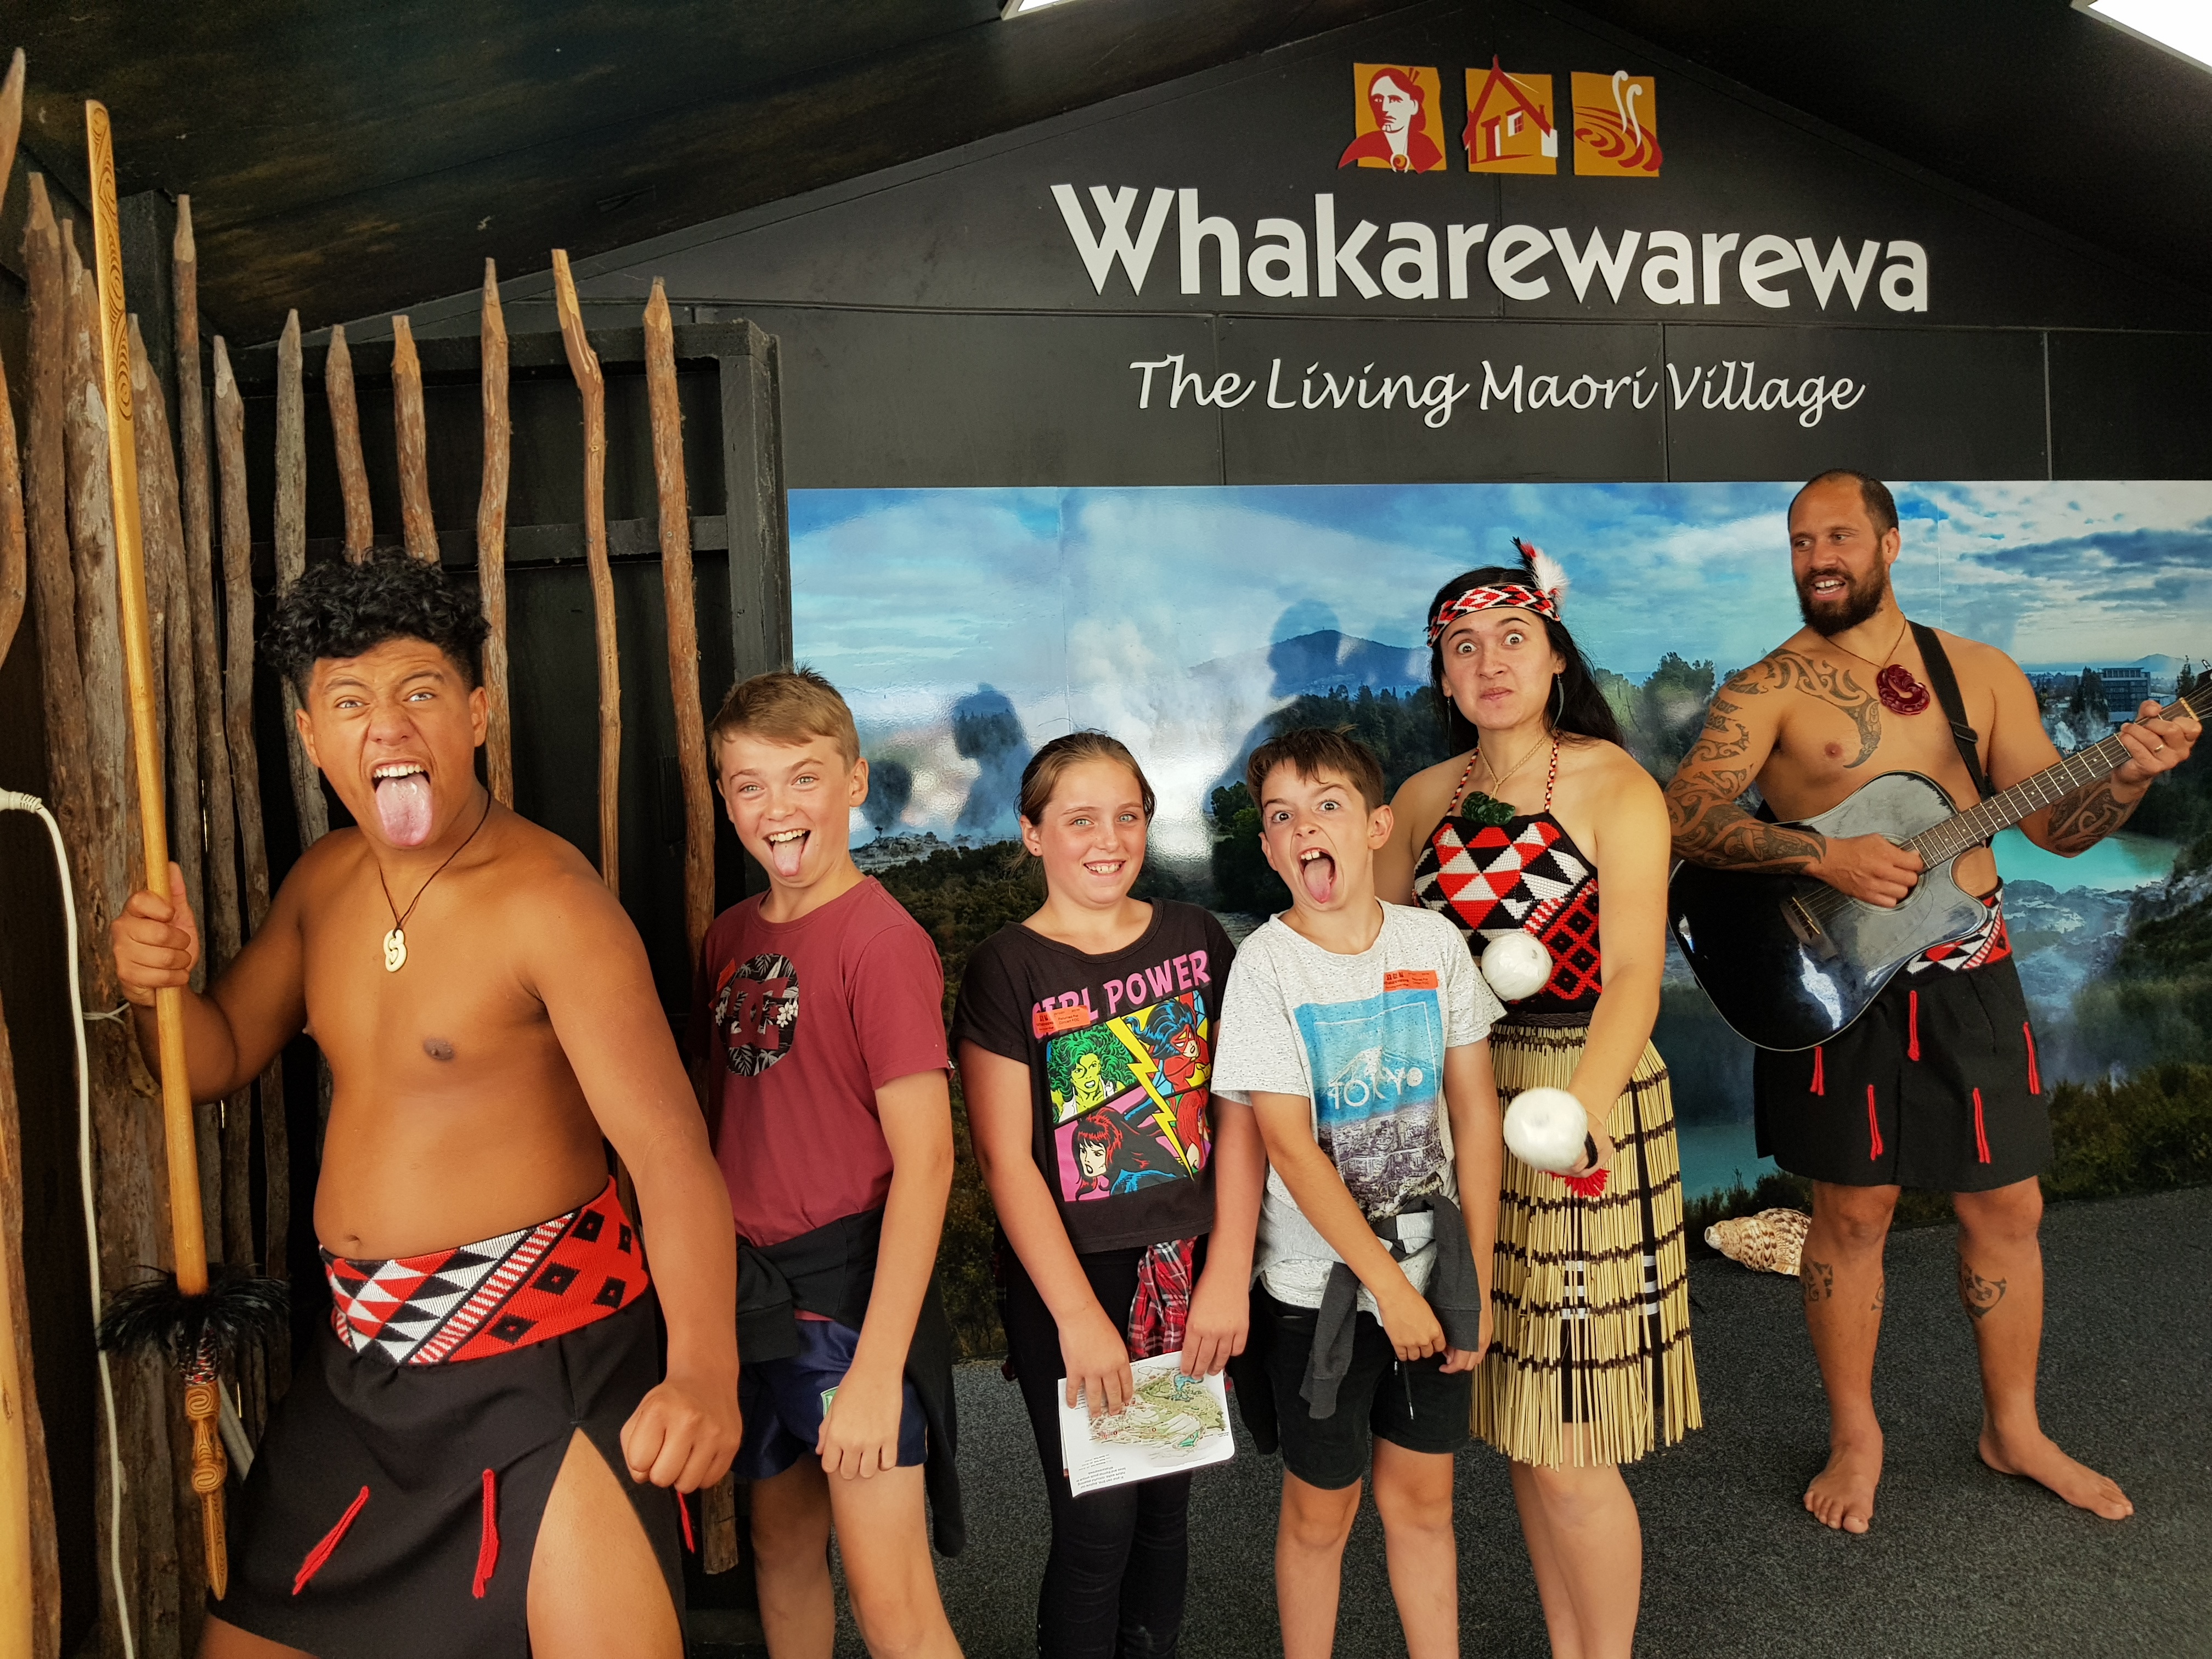 Families enjoying the Whakarewarewa Cultural Performance